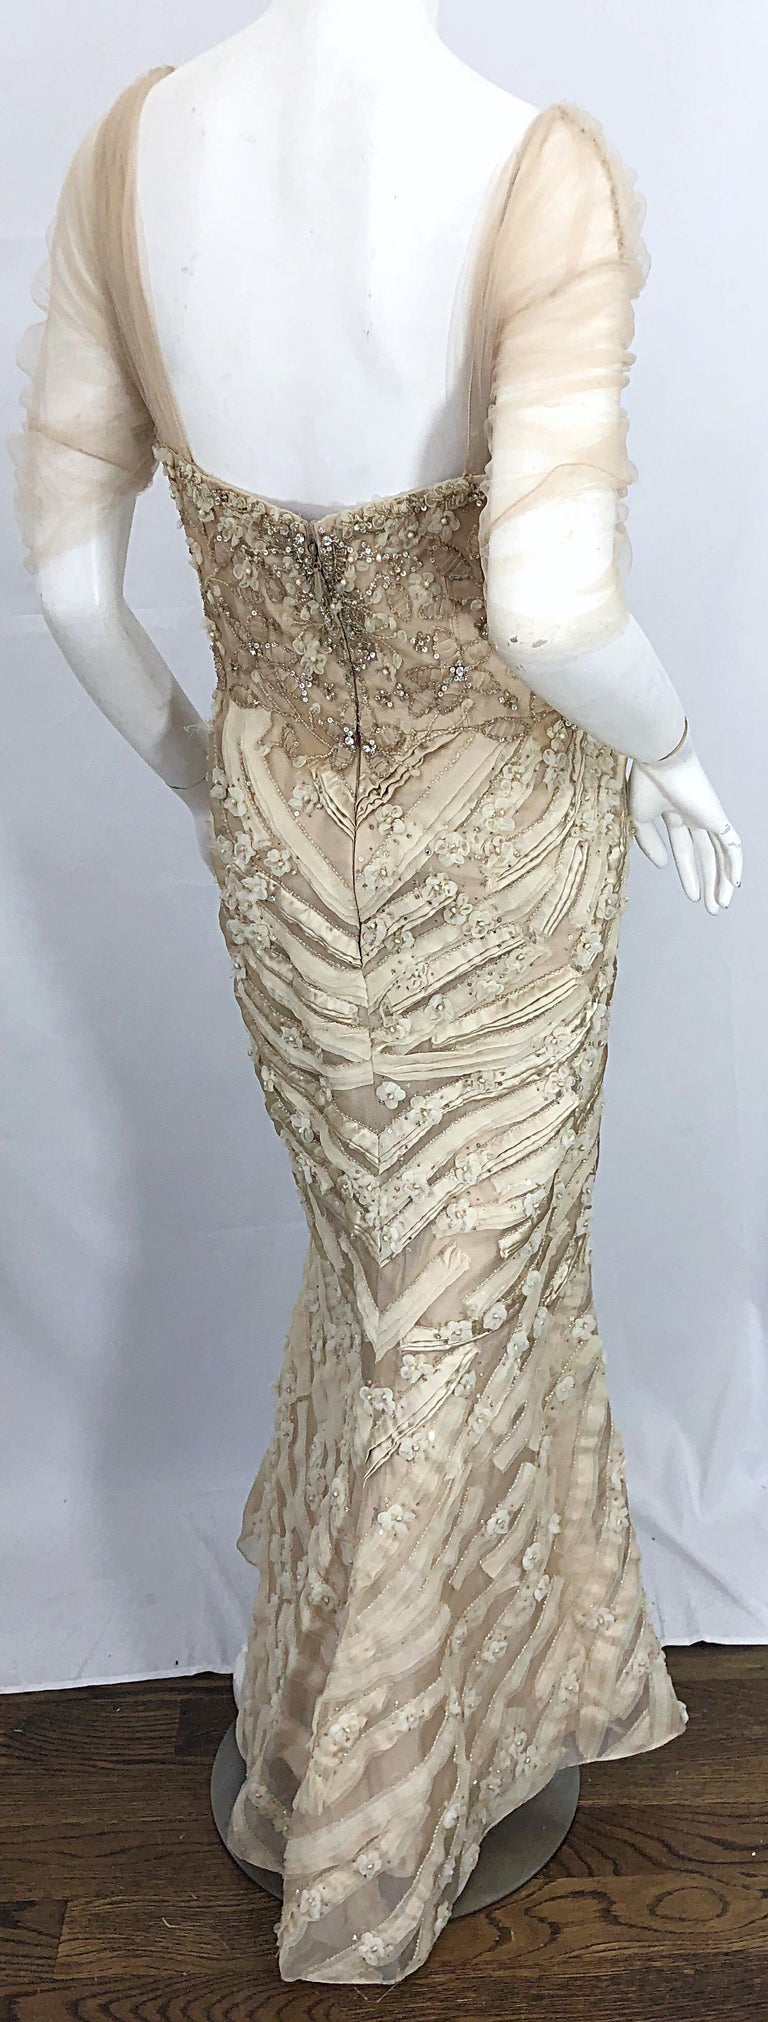 Monique Lhuillier Couture Size 10 / 12 Beige Rhinestone Beaded $12,000 Silk Gown For Sale 8